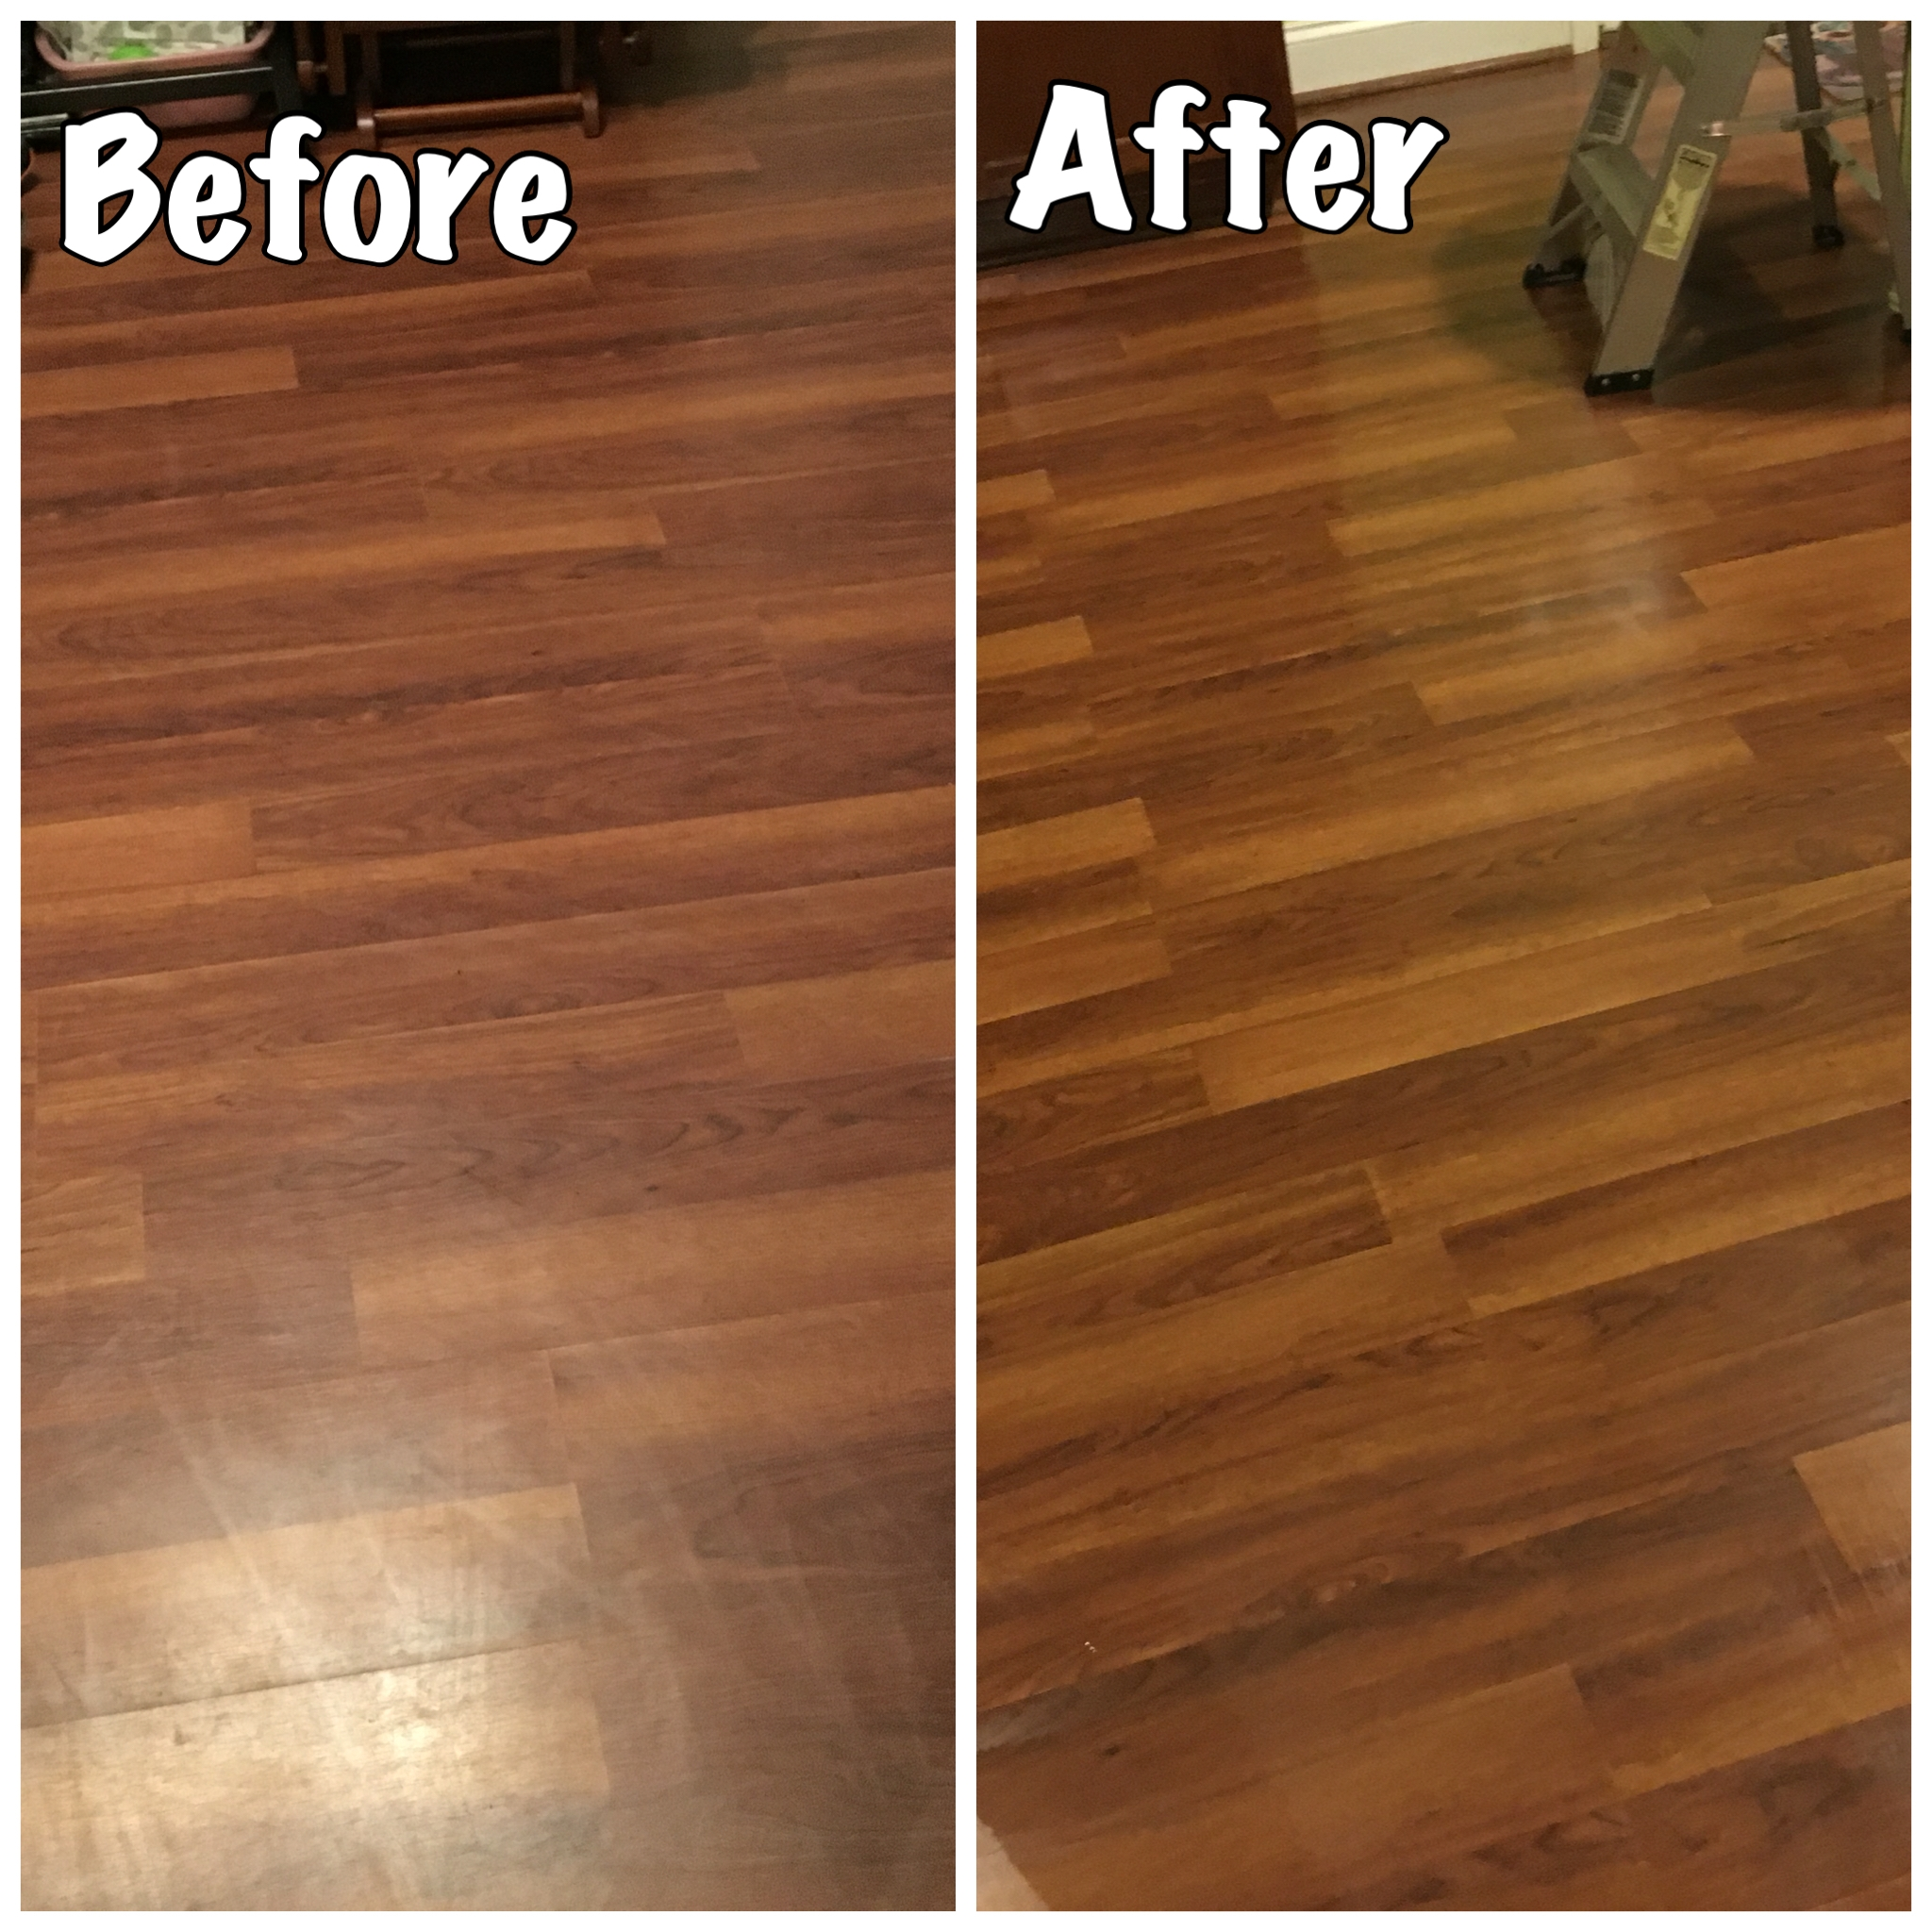 Make Wood Floors Shine Like New